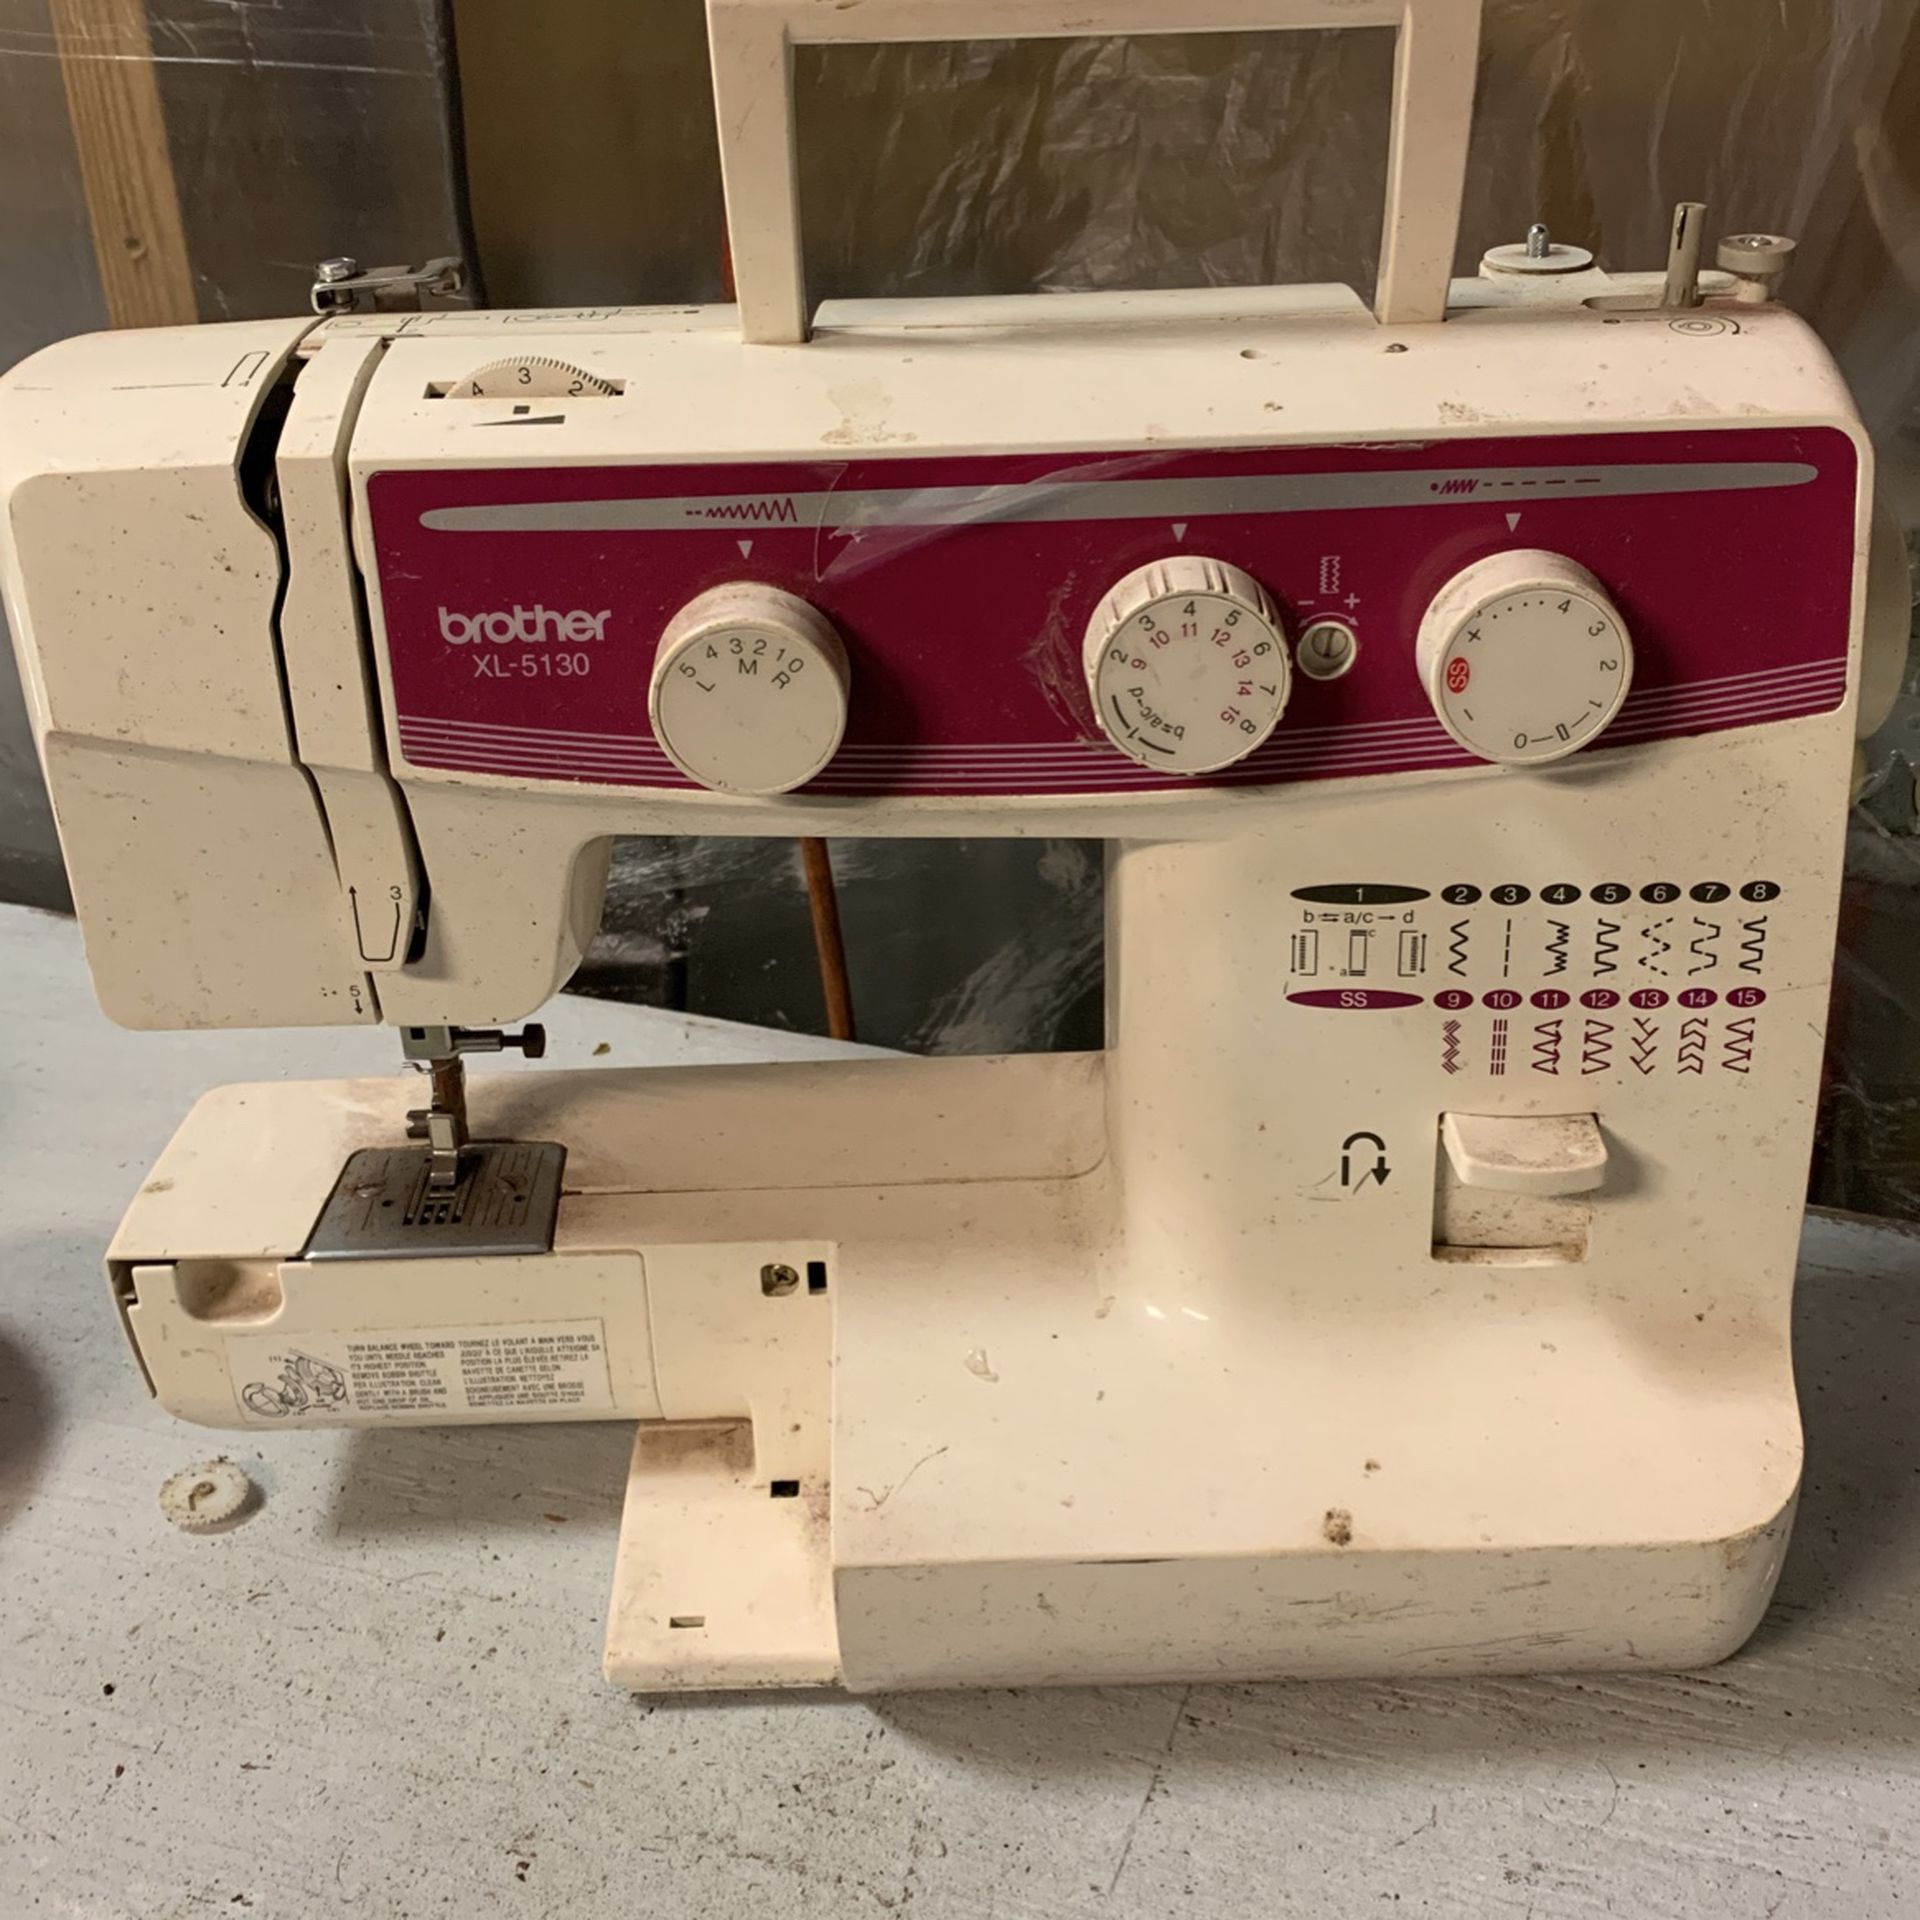 Brother XX-5130 Sewing Machine